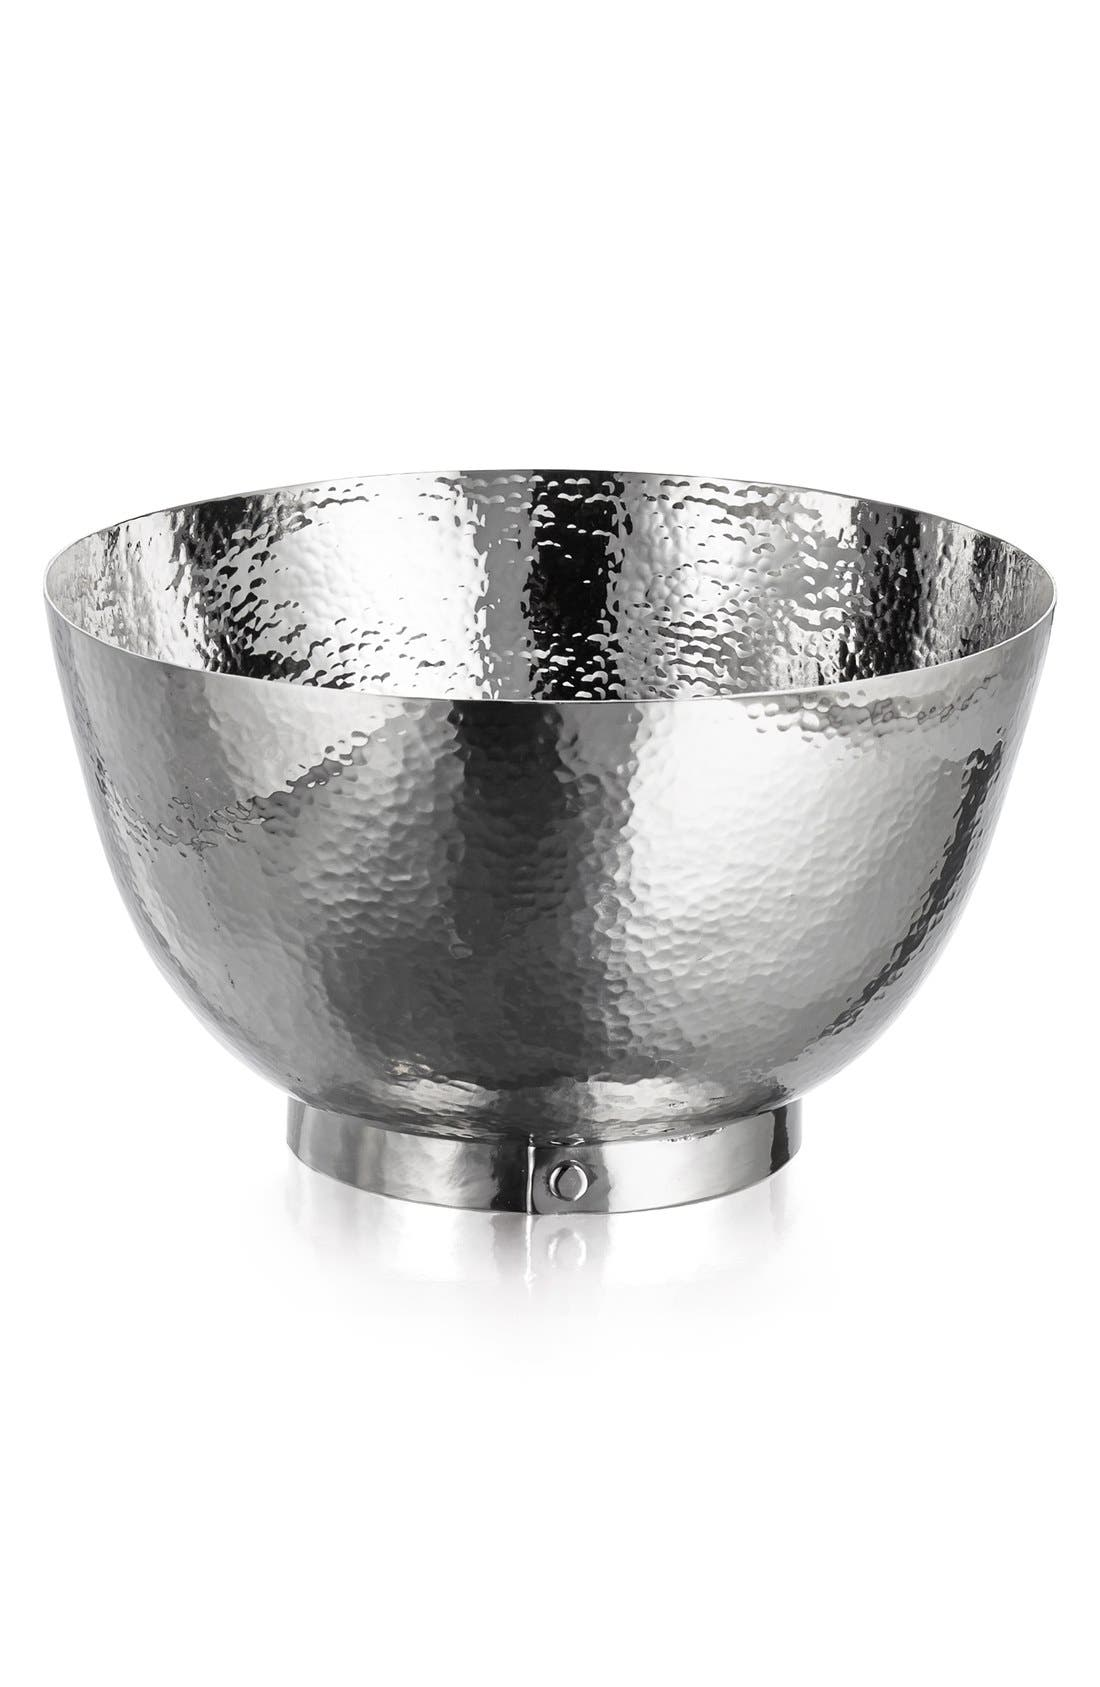 'Rivet' Hammered Stainless Steel Bowl,                         Main,                         color, Silver